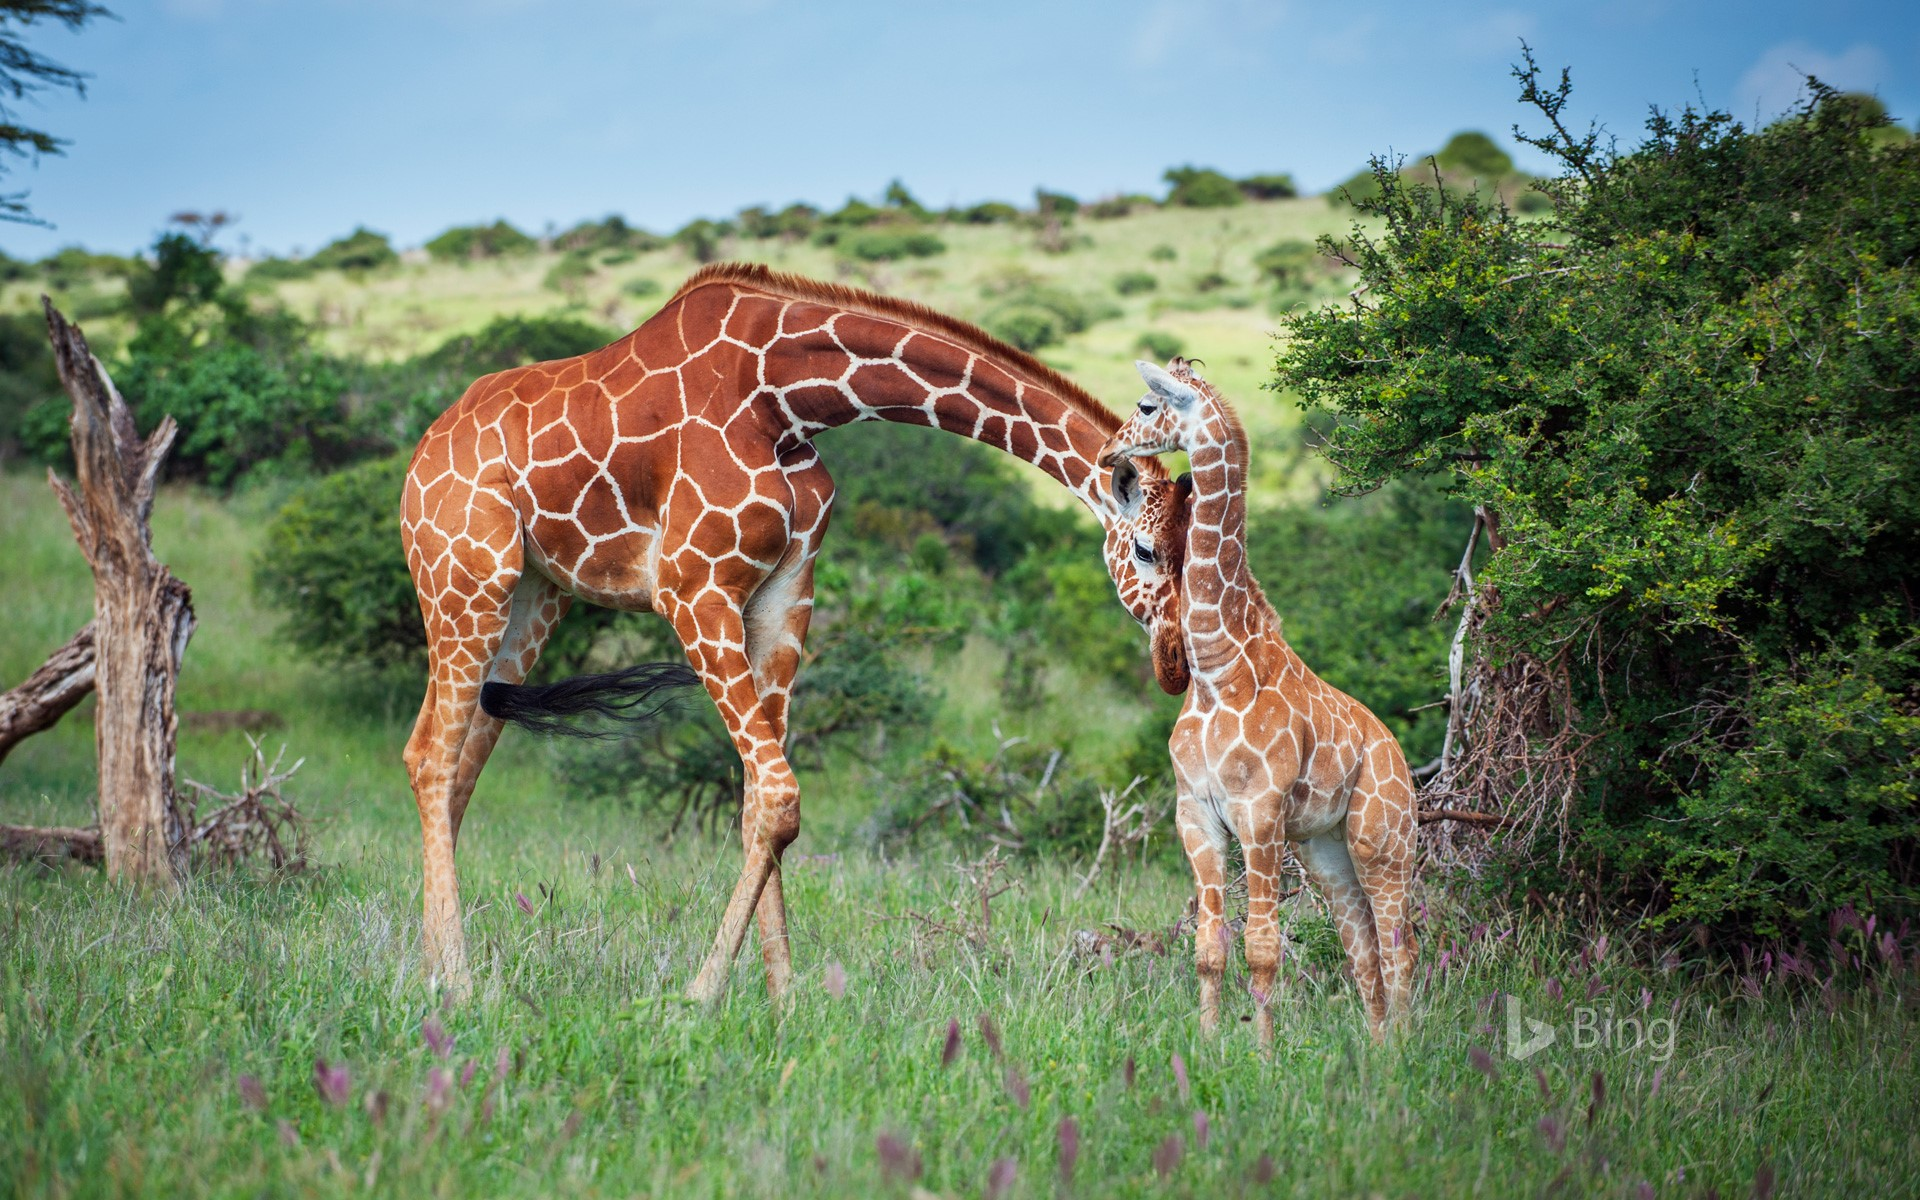 Reticulated giraffe nuzzles her calf in Lewa Wildlife Conservancy, Kenya